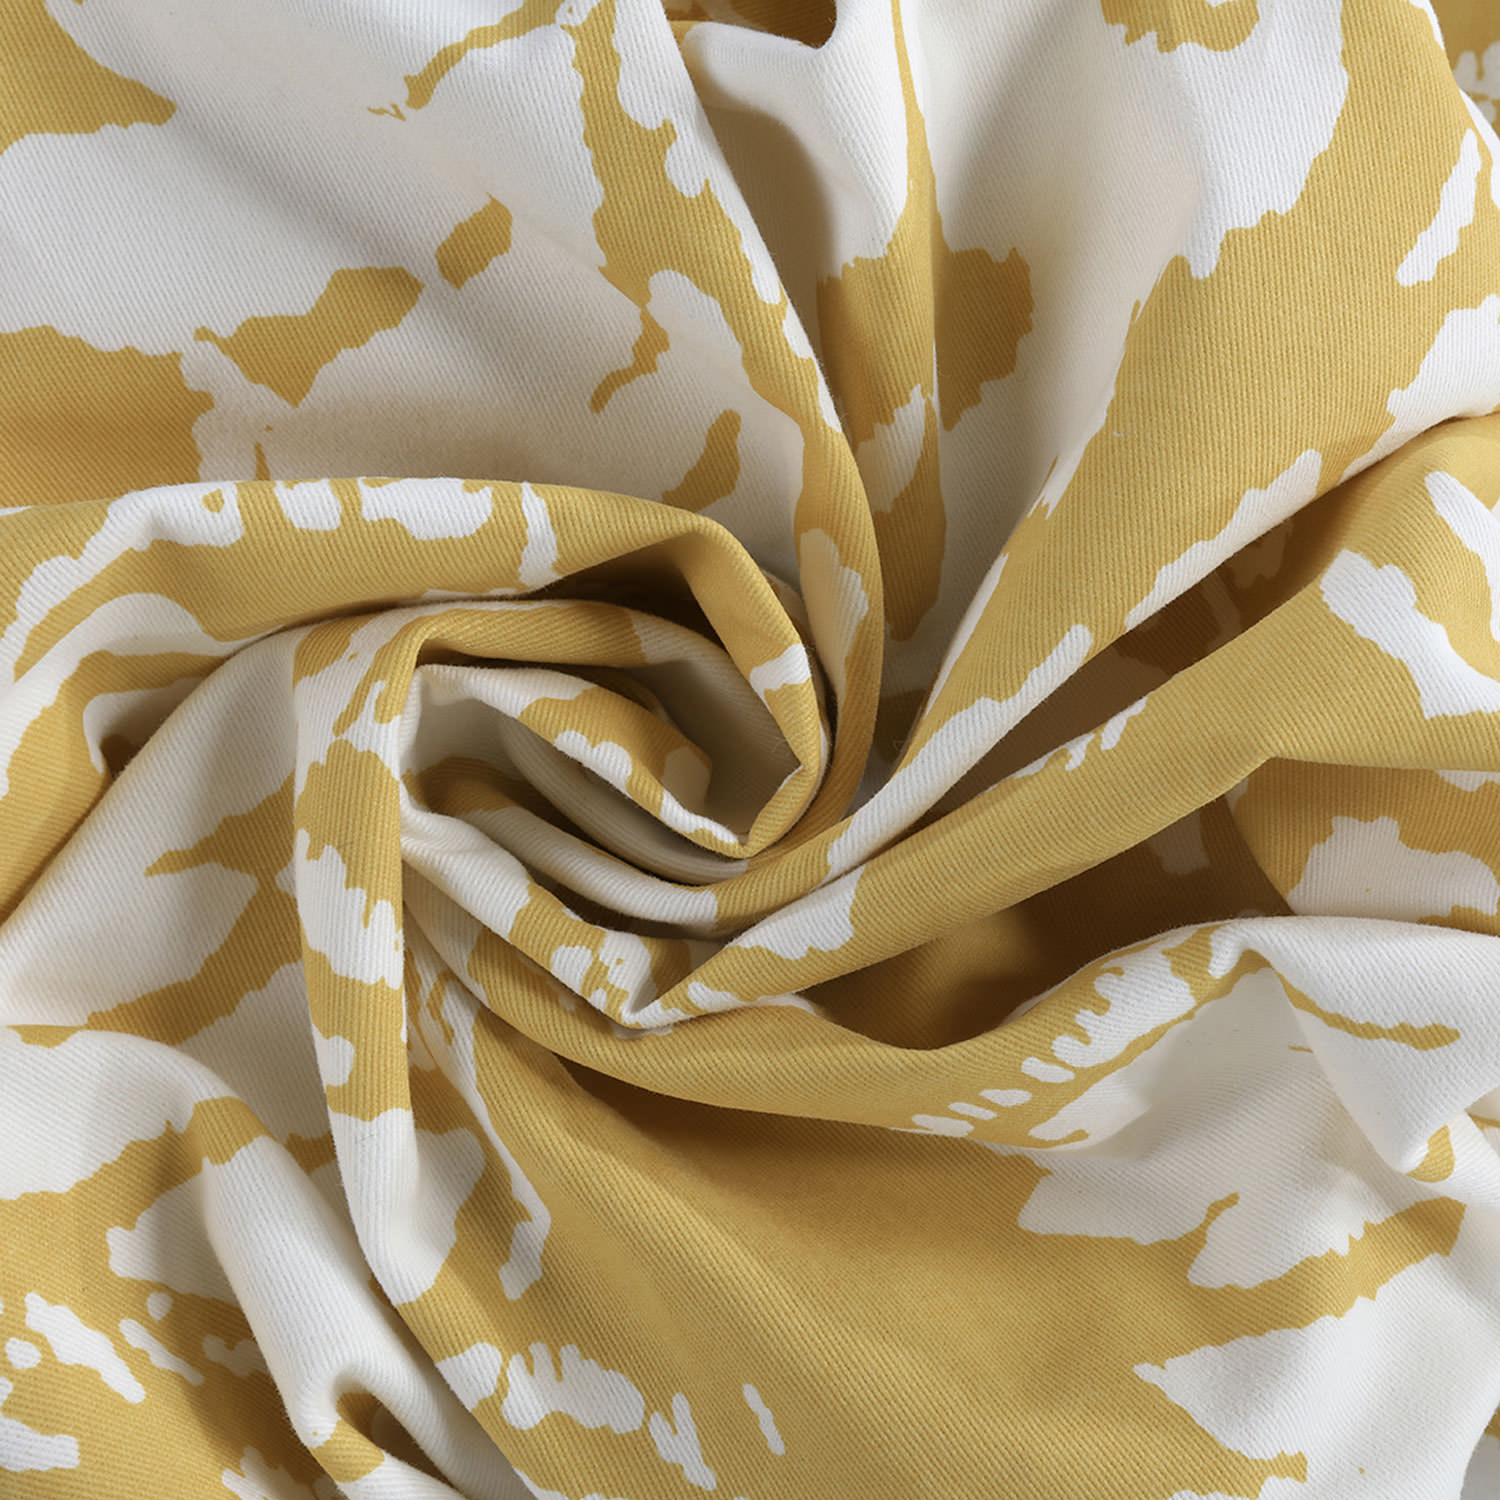 Lacuna Sun Printed Cotton Twill Fabric